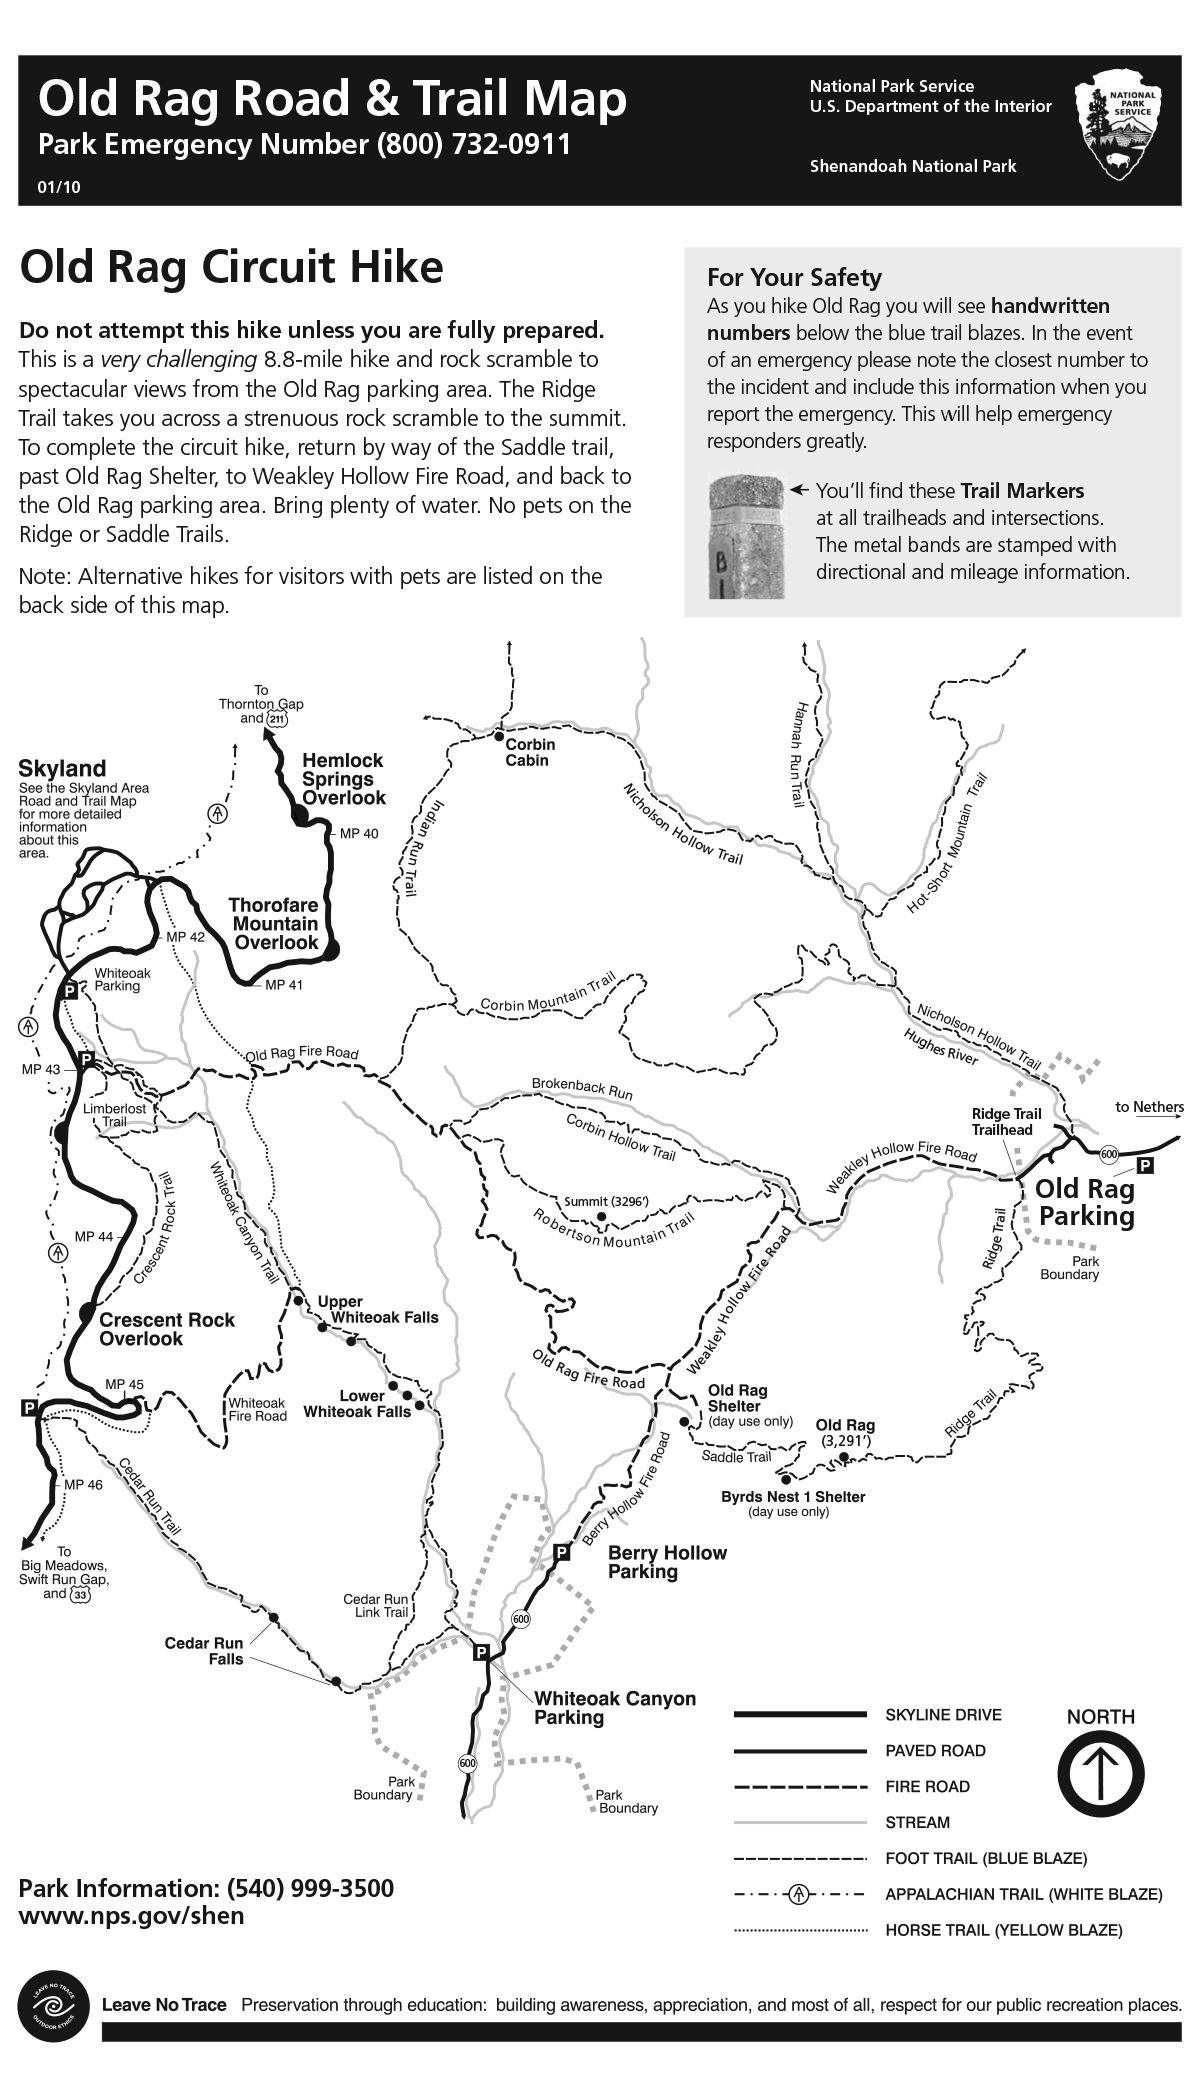 Trail Map For Hiking Old Rag VIRGINIA HIKING TRAIL Pinterest - Old rag map